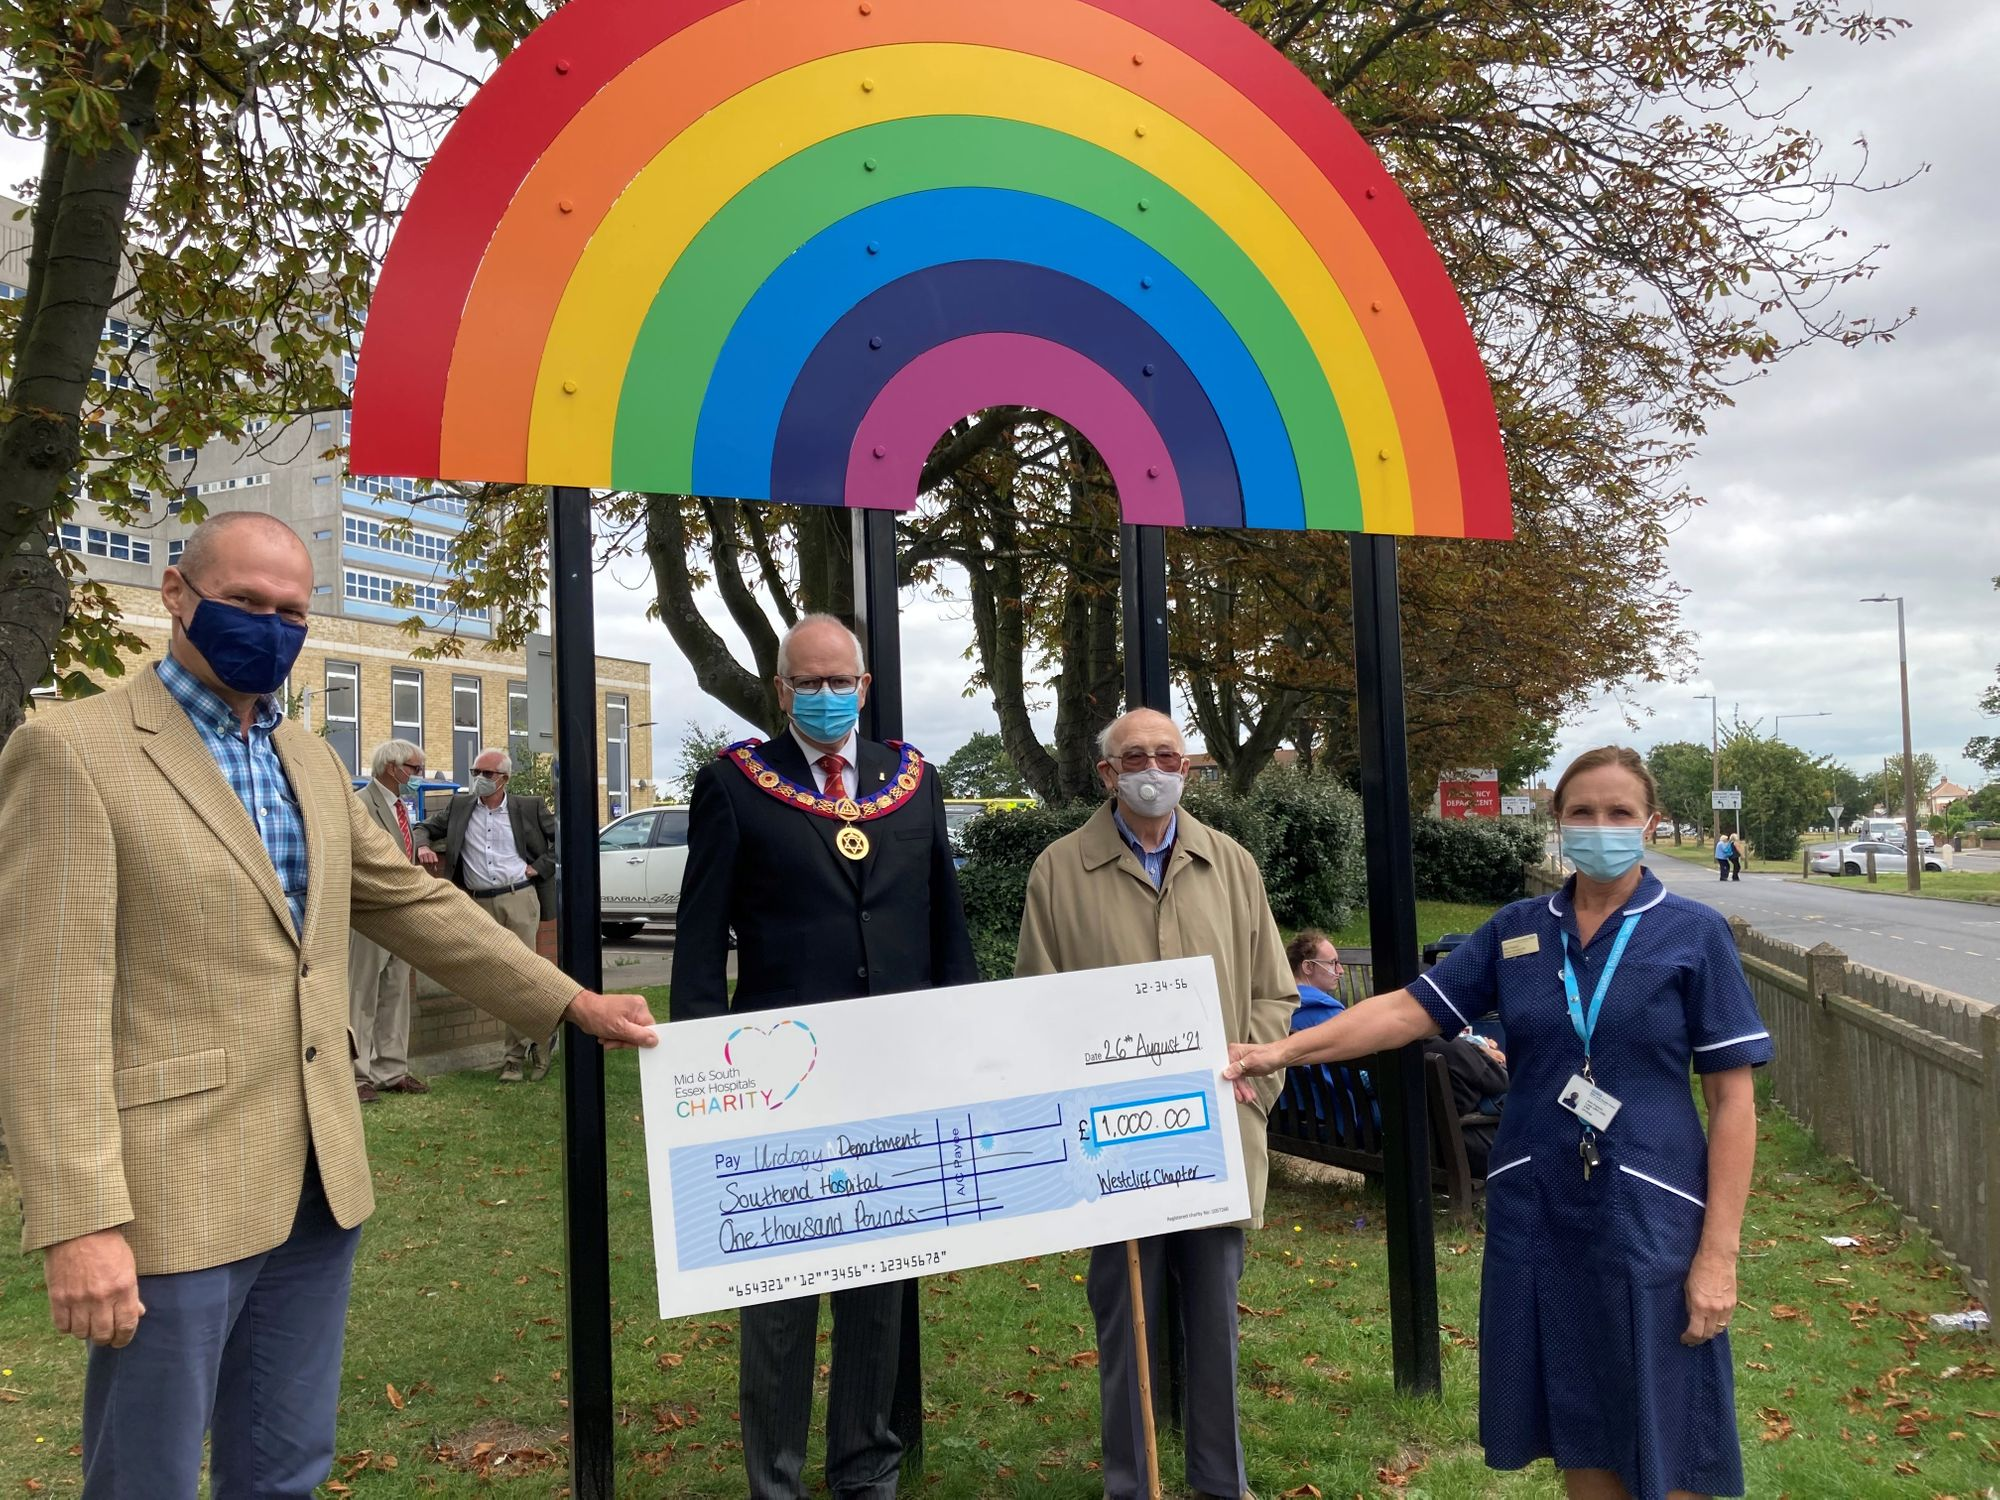 Essex/England - Cancer support group receives £1,000 donation from Southend Freemasons